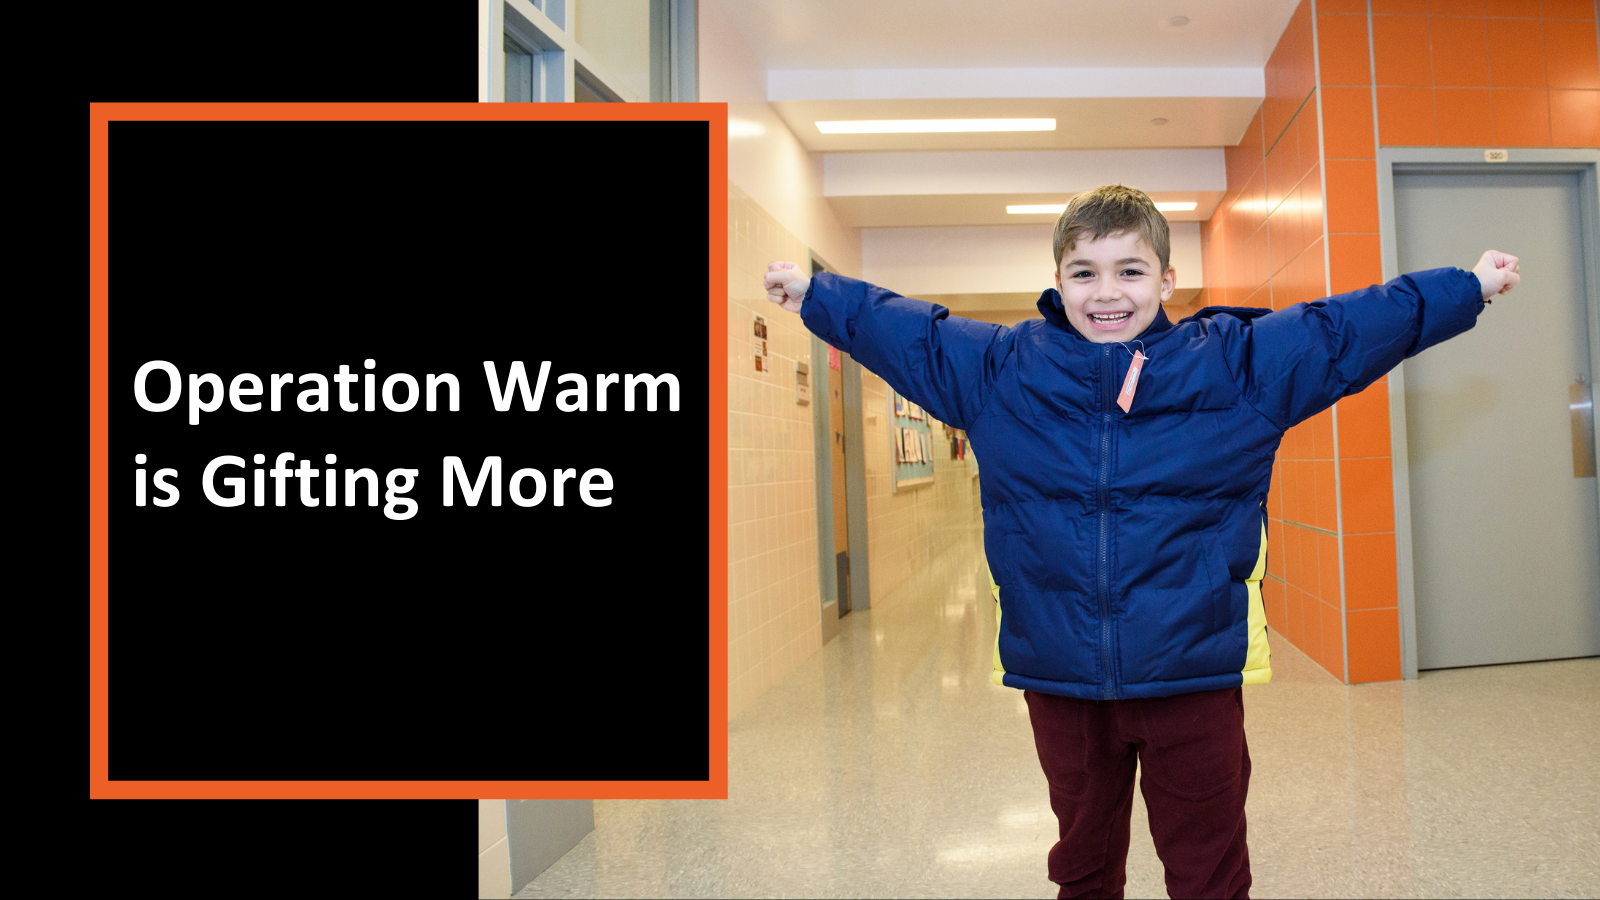 Operation Warm is Gifting More